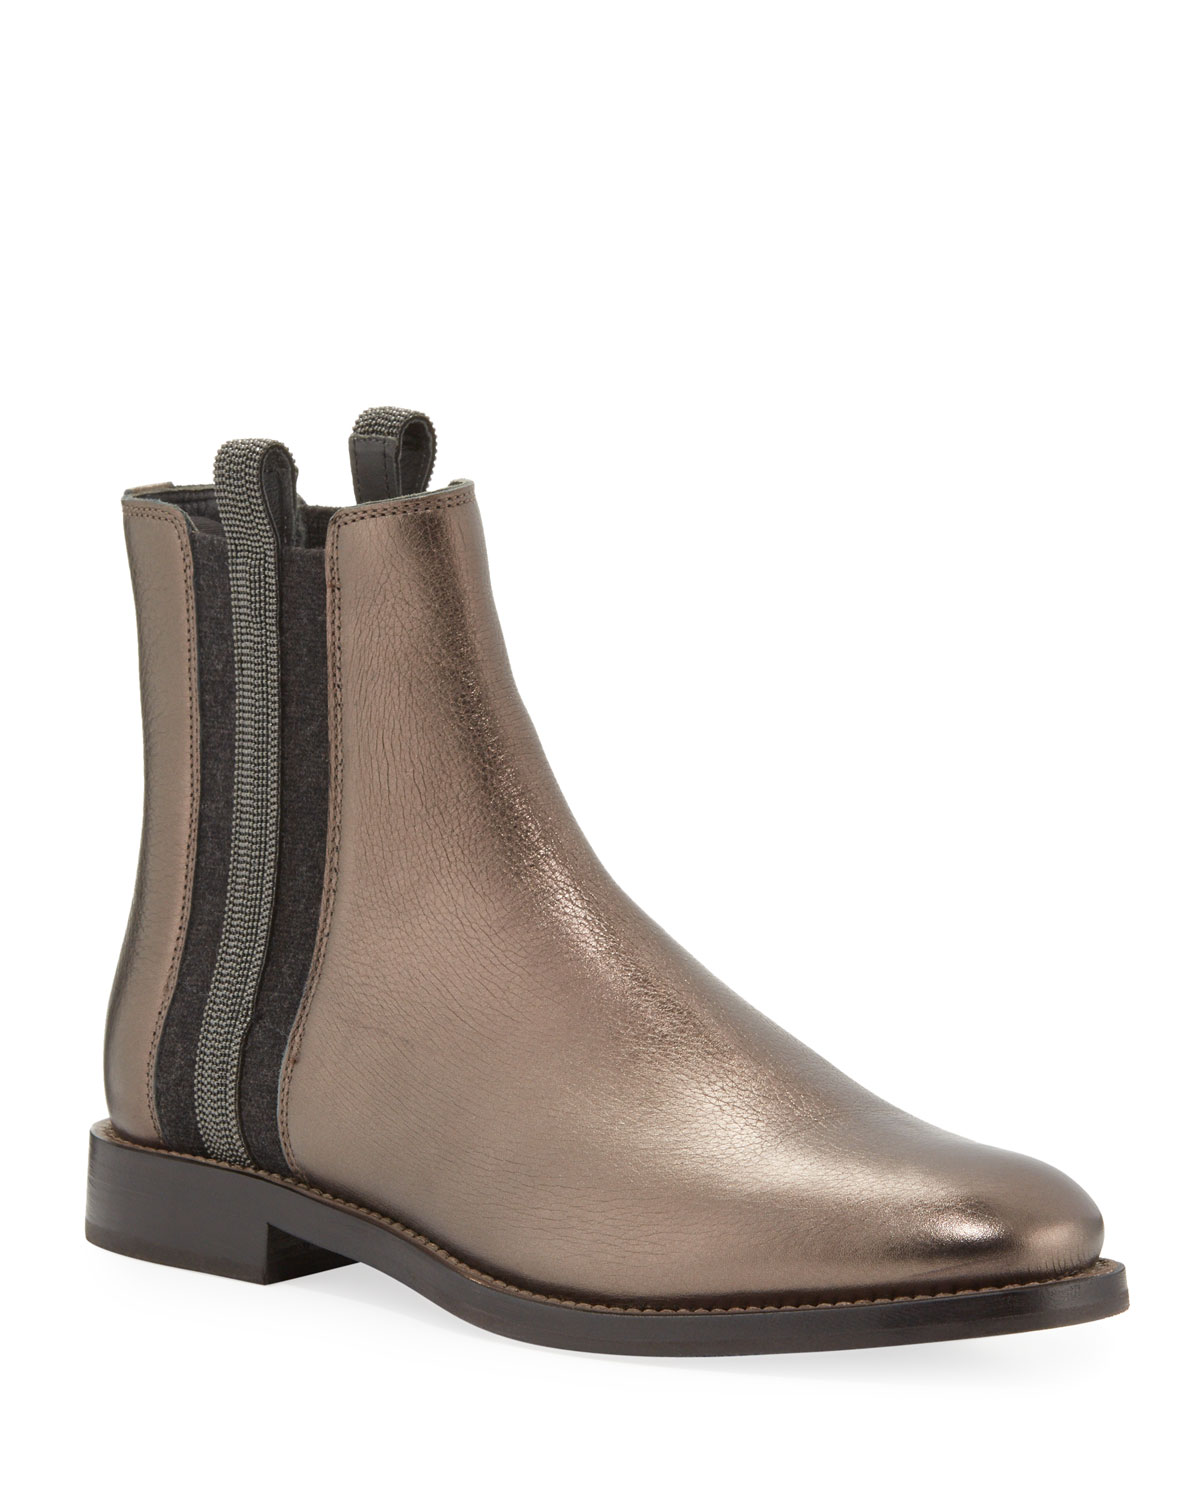 Metallic Leather Chelsea Boots